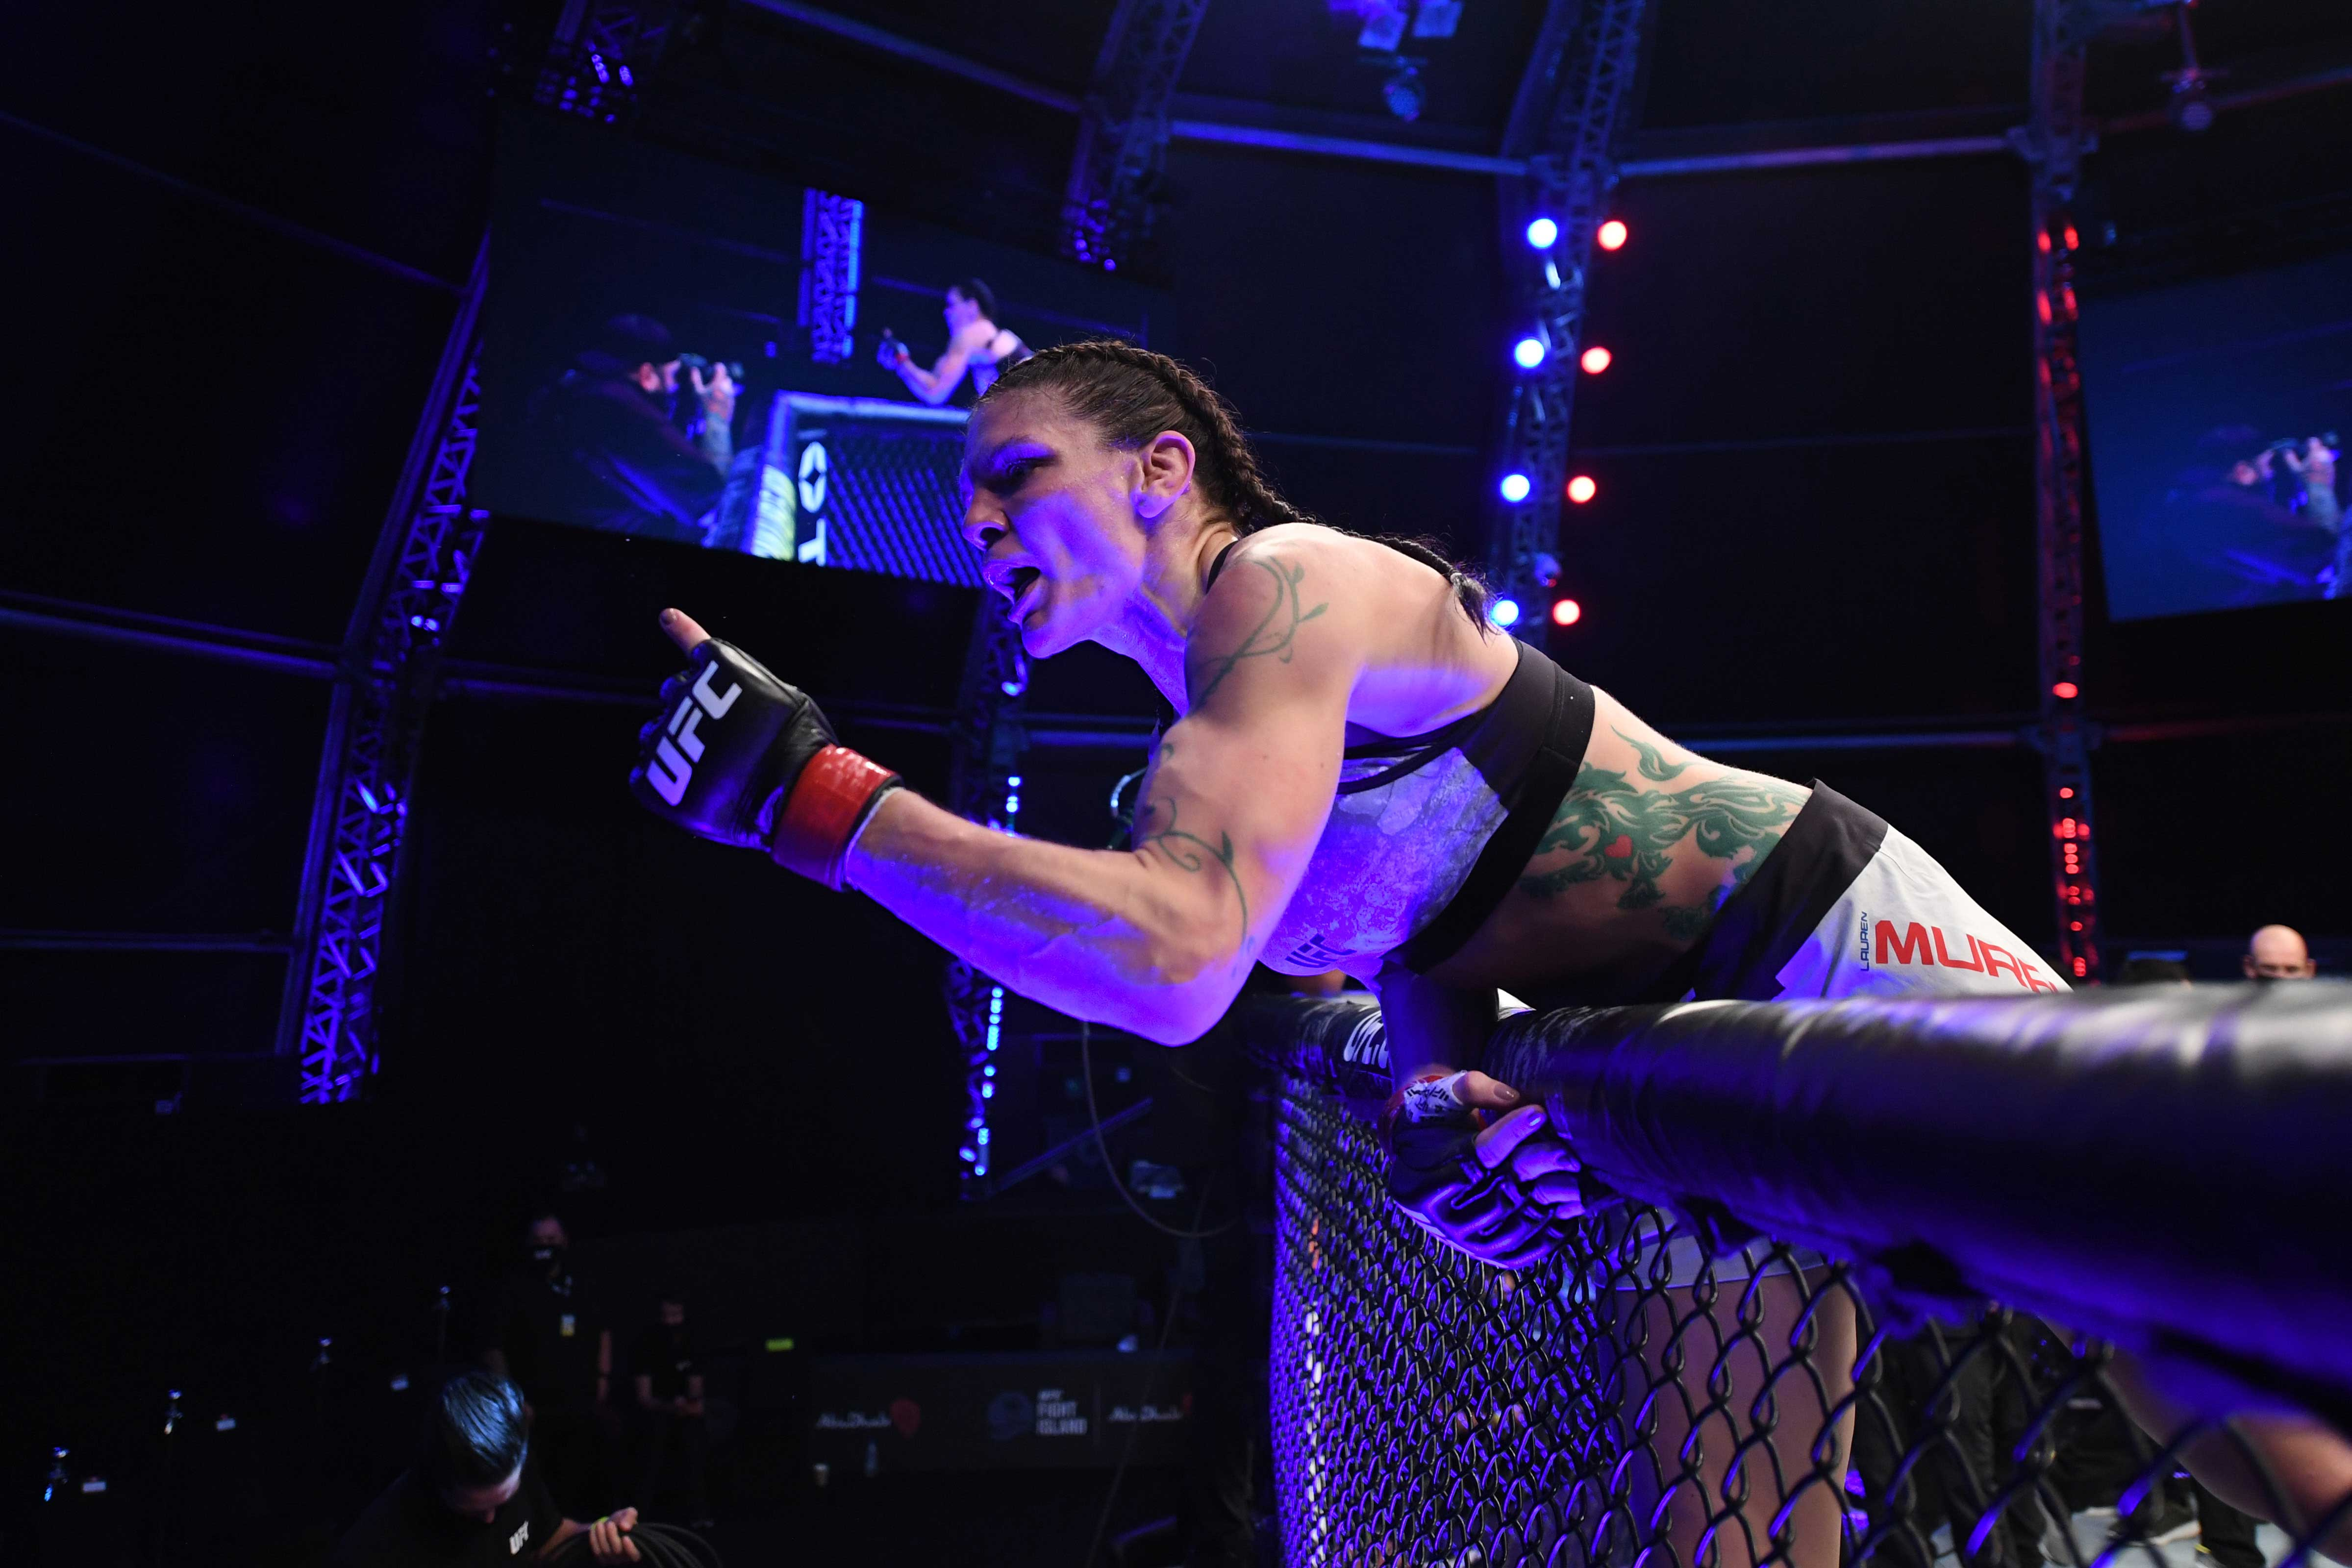 Lauren Murphy celebrates her victory over Liliya Shakirova of Uzbekistan in their women's flyweight bout during the UFC 254 event on October 24, 2020 on UFC Fight Island, Abu Dhabi, United Arab Emirates. (Photo by Josh Hedges/Zuffa LLC via Getty Images)